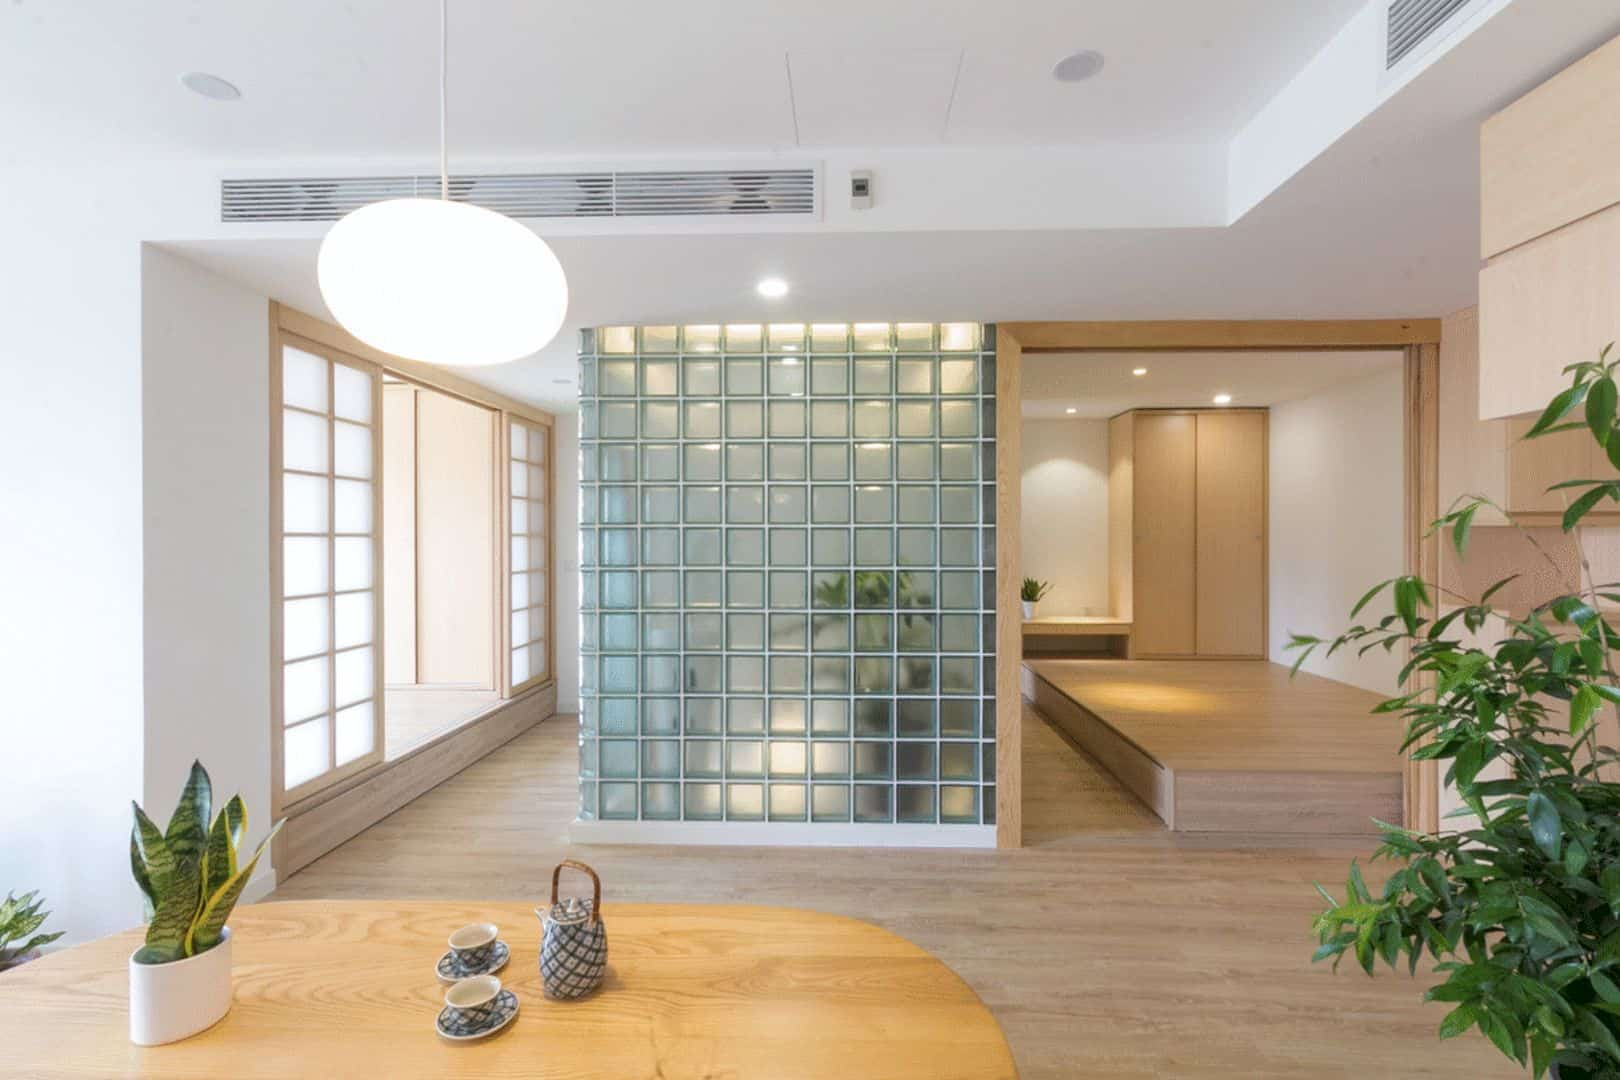 Glass Block Renovation Of An Apartment Space To Create A Light Filled Atmosphere